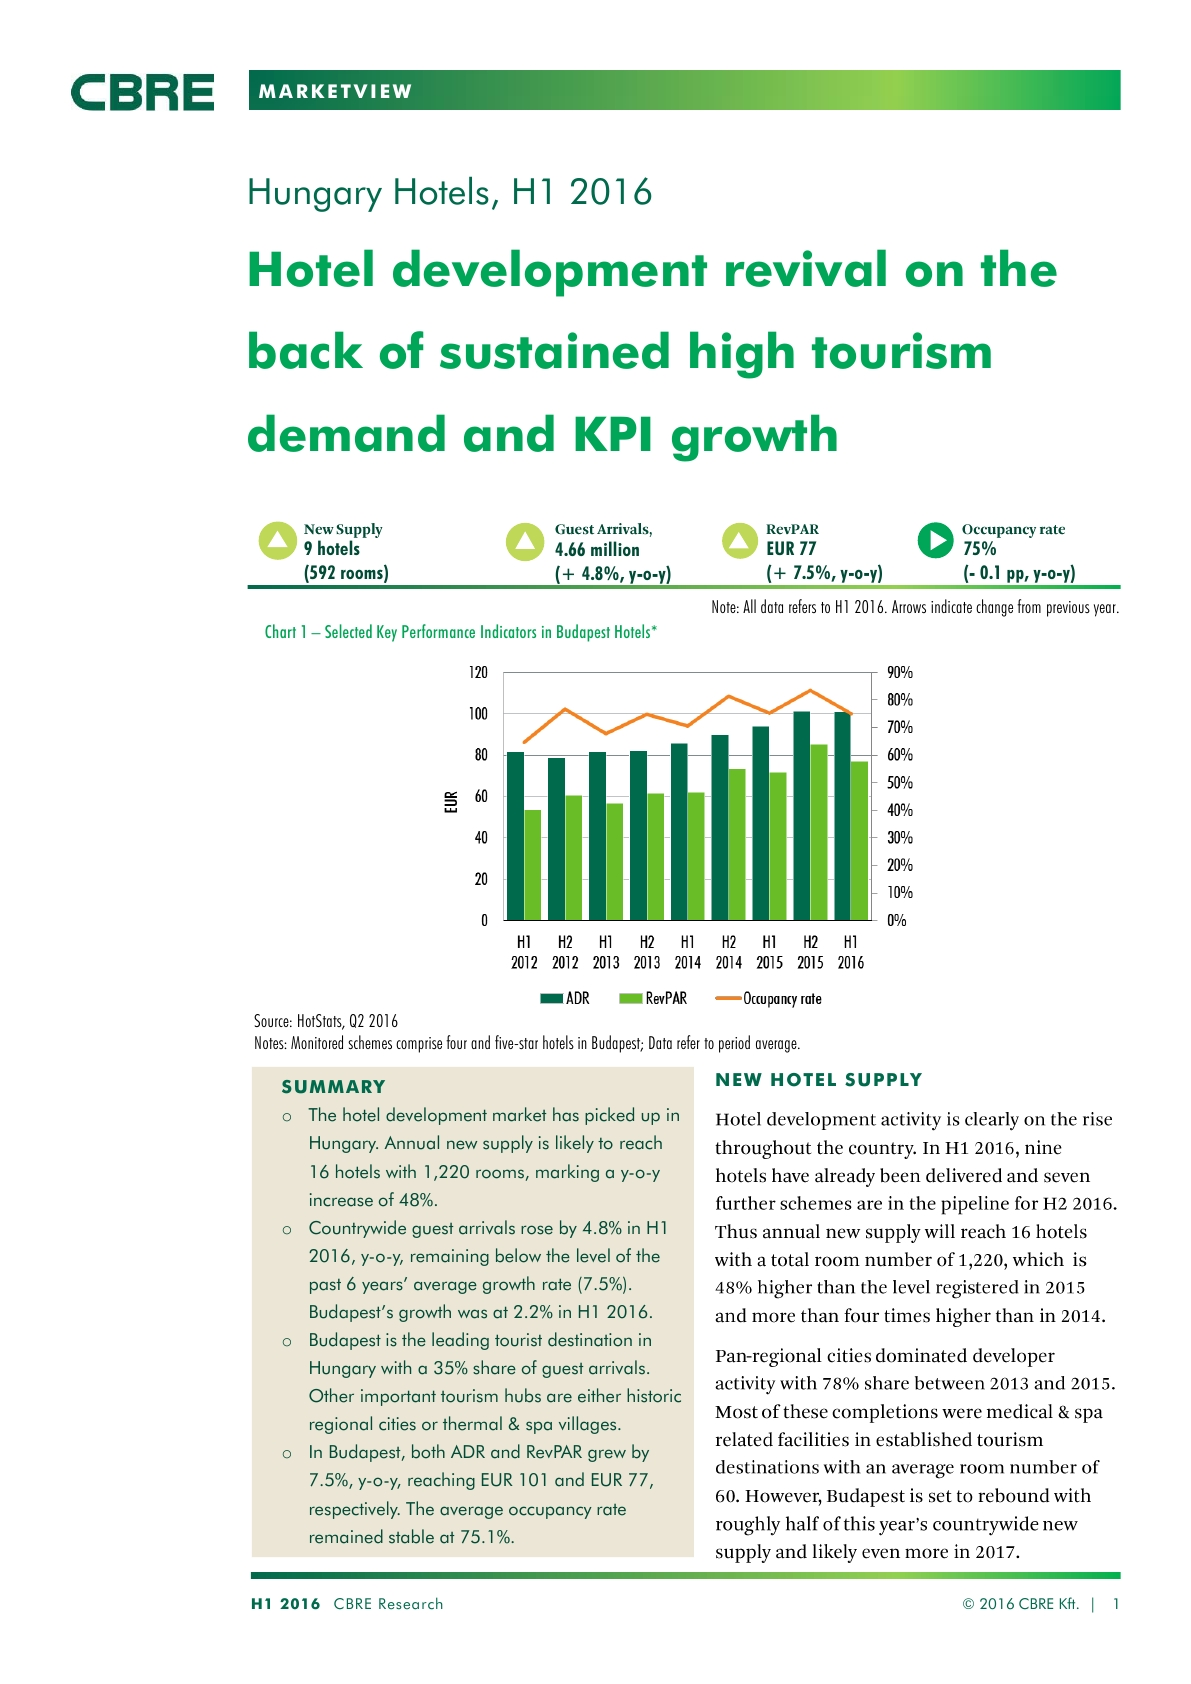 Hungary Hotels Market View 2016 H1